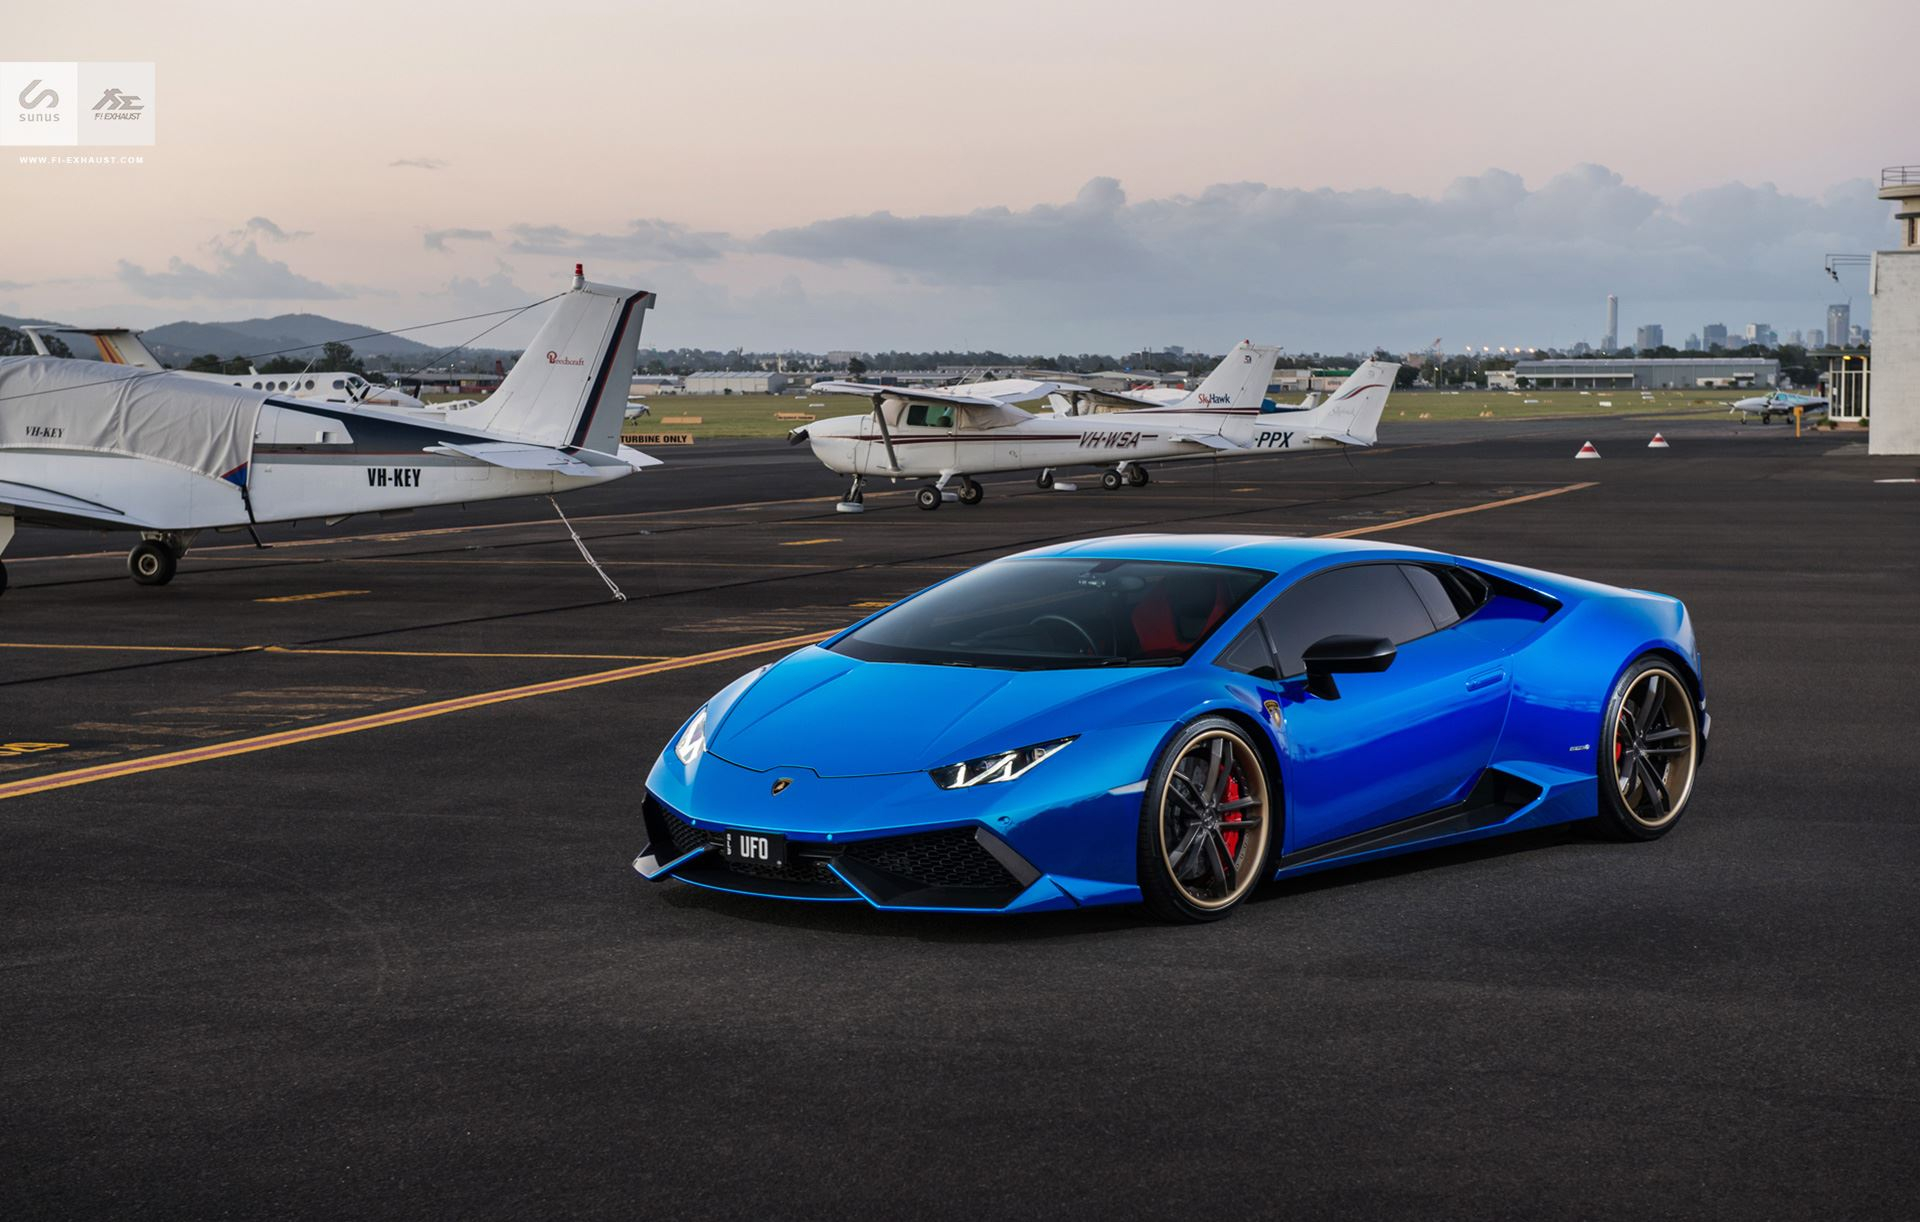 Gold Lamborghini Wallpaper together with 115787 Lamborghini Unveils Luxury Android Phone And Tablet as well Stunning Blue Chrome Lamborghini Huracan Sunus Motorsport also Stunning Blue Chrome Lamborghini Huracan Sunus Motorsport in addition Lamborghini Veneno All 3. on solid gold lamborghini huracan